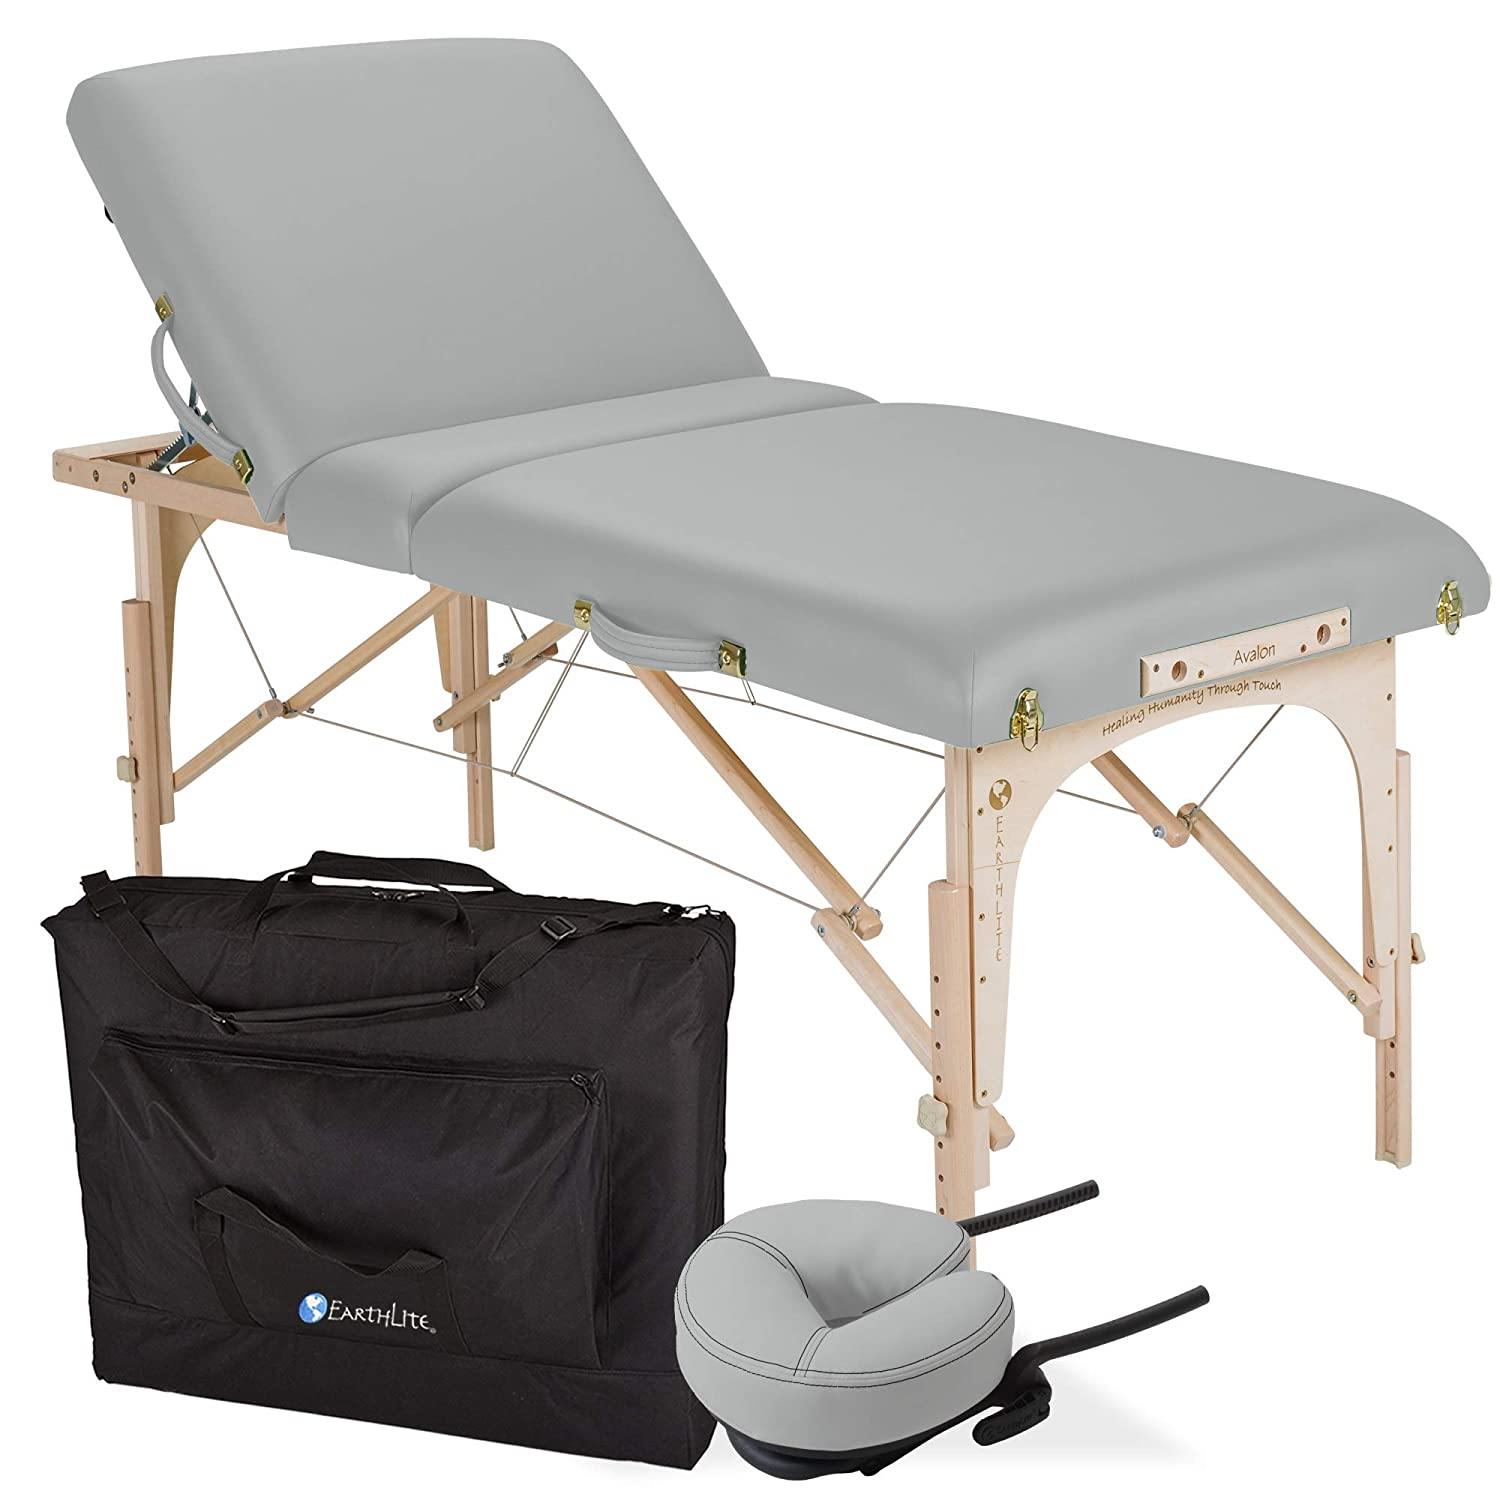 Earthlite portable adjustable tilt massage table in Sterling light grey